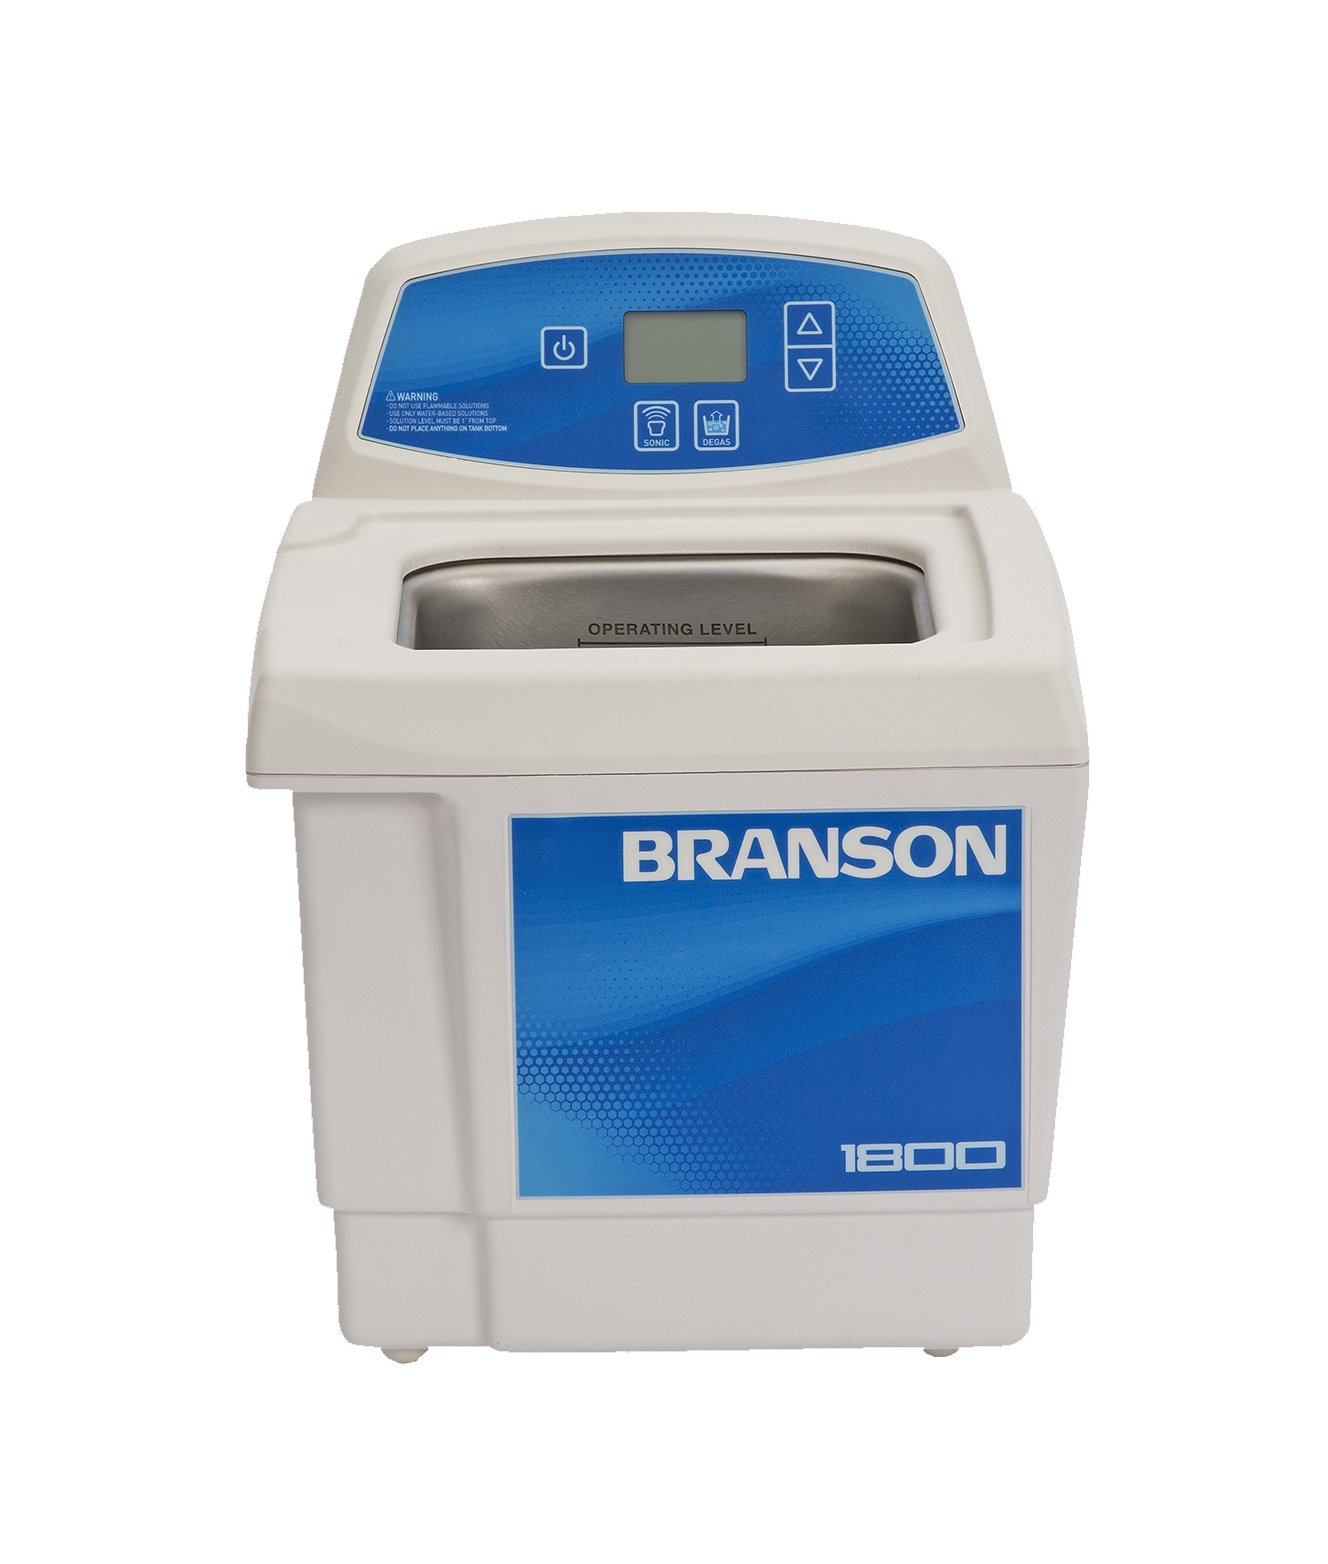 Branson CPX-952-117R Series MH Mechanical Cleaning Bath with Mechanical Timer and Heater, 0.5 Gallons Capacity, 120V